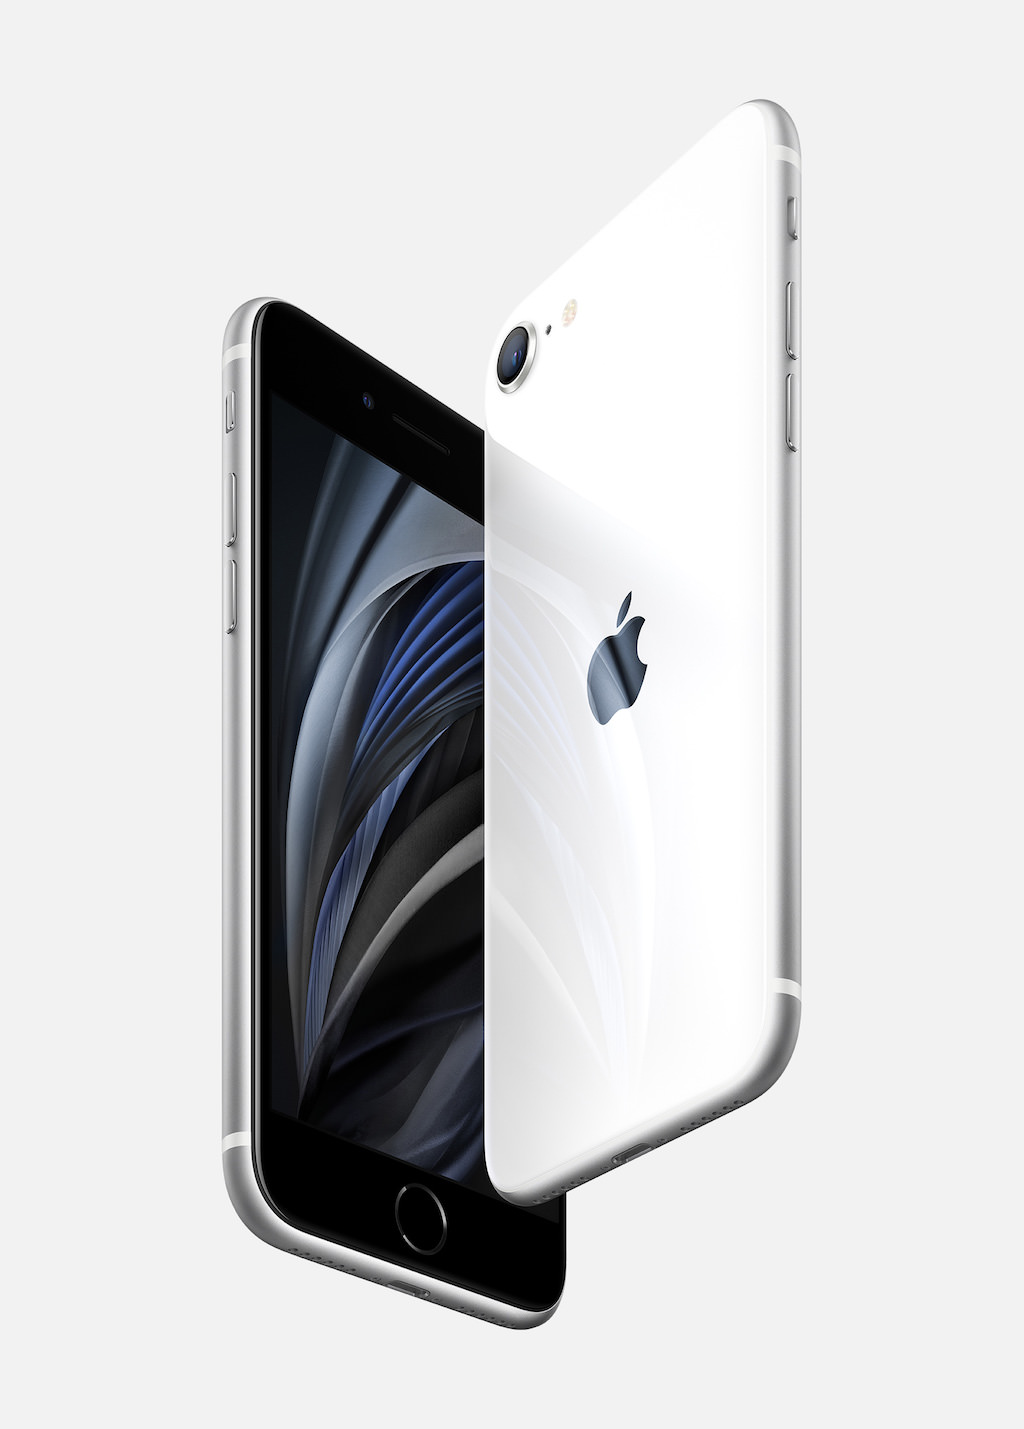 Apple iPhone SE (2nd Generation, 2020 model) Smartphone in White